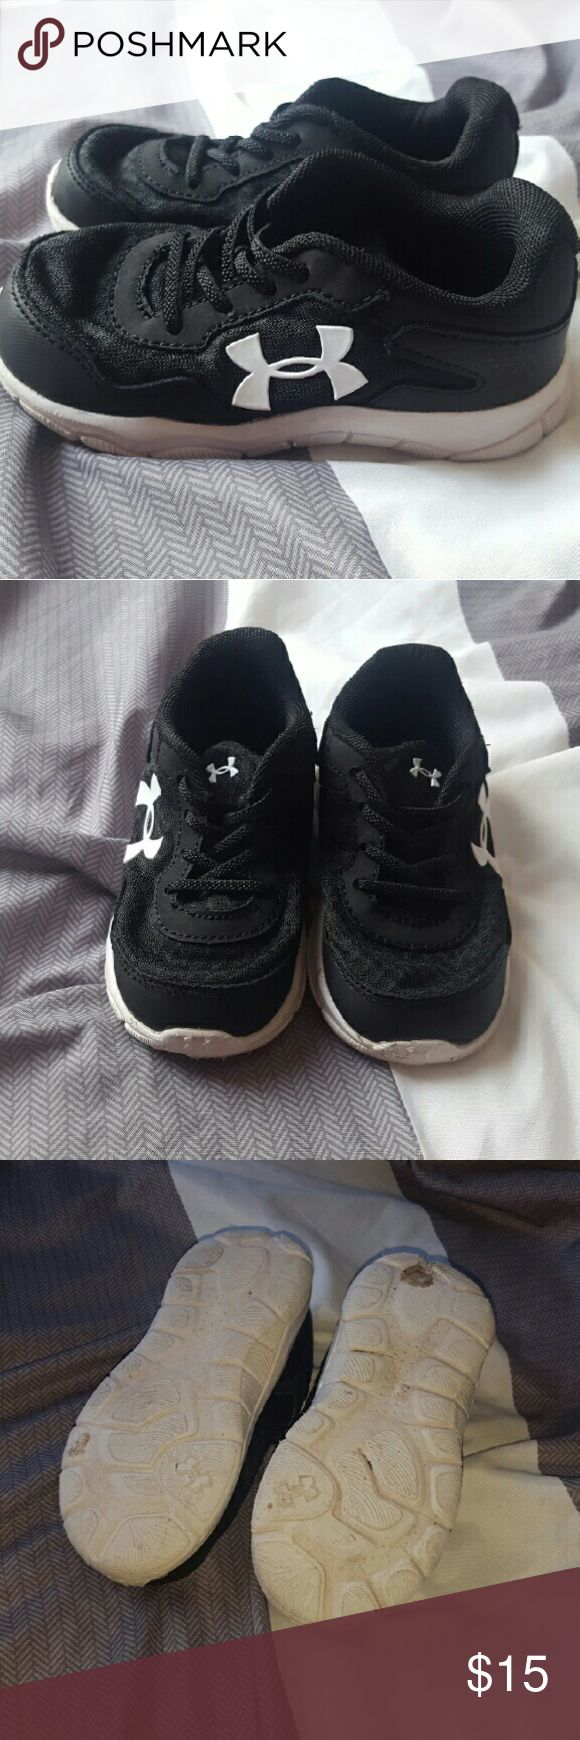 Under Armour tennis shoes Used classic black and white tennis shoes.  Shows normal signs of wear,  especially on the bottoms of the shoes. Other than that they are in very good condition.  8c. For either toddler boy or girl Under Armour Shoes